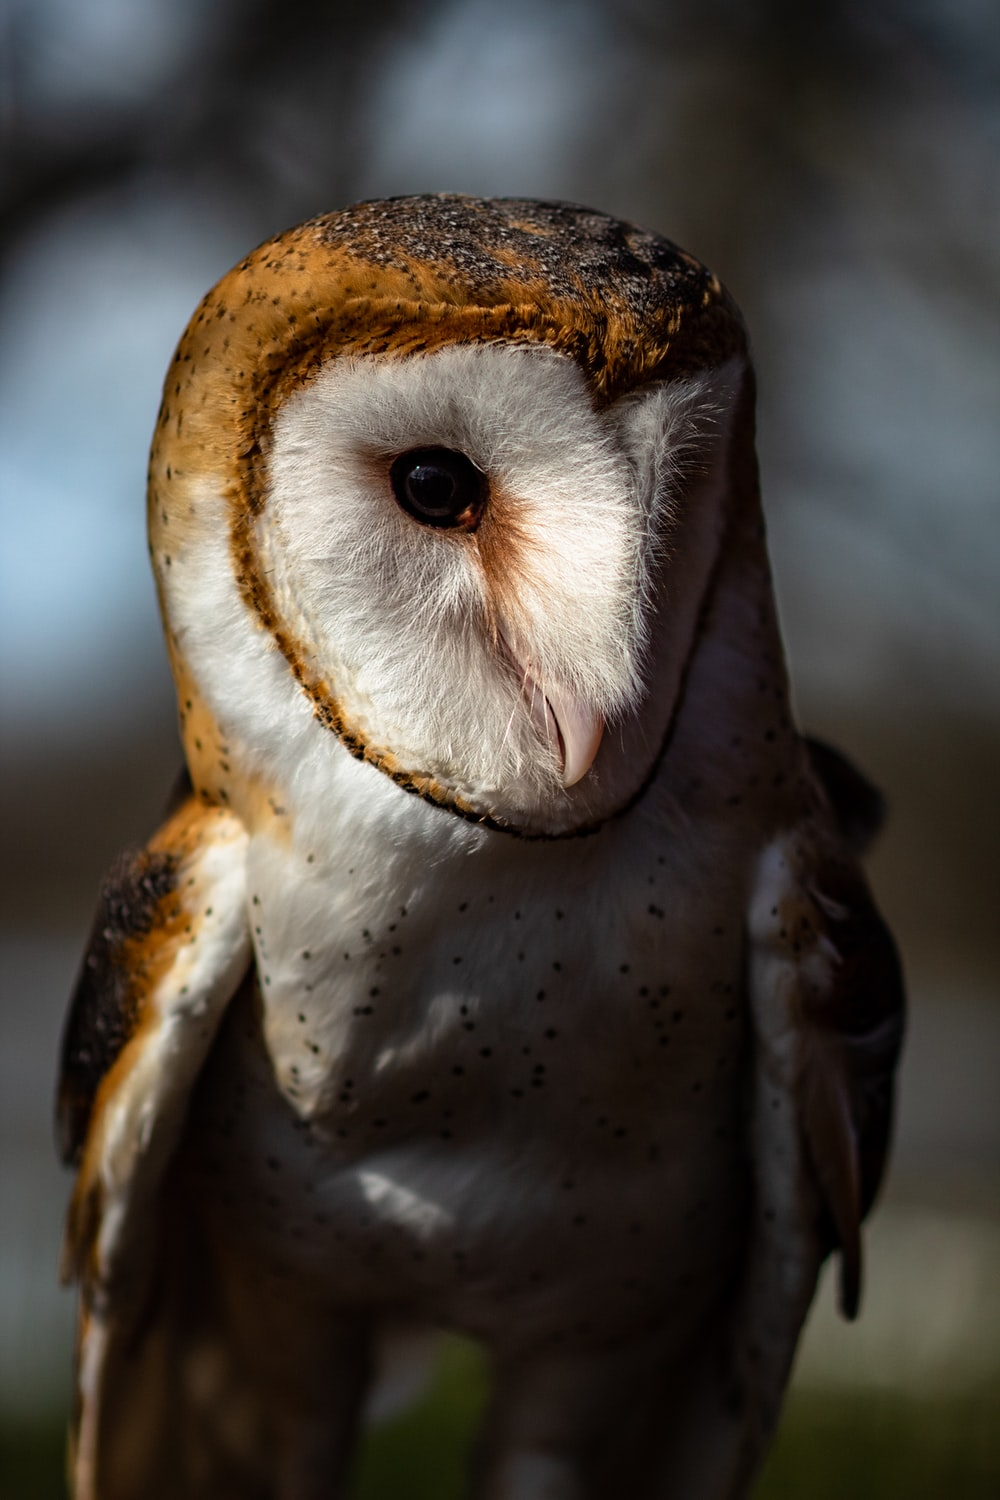 close-up of white and brown barn owl